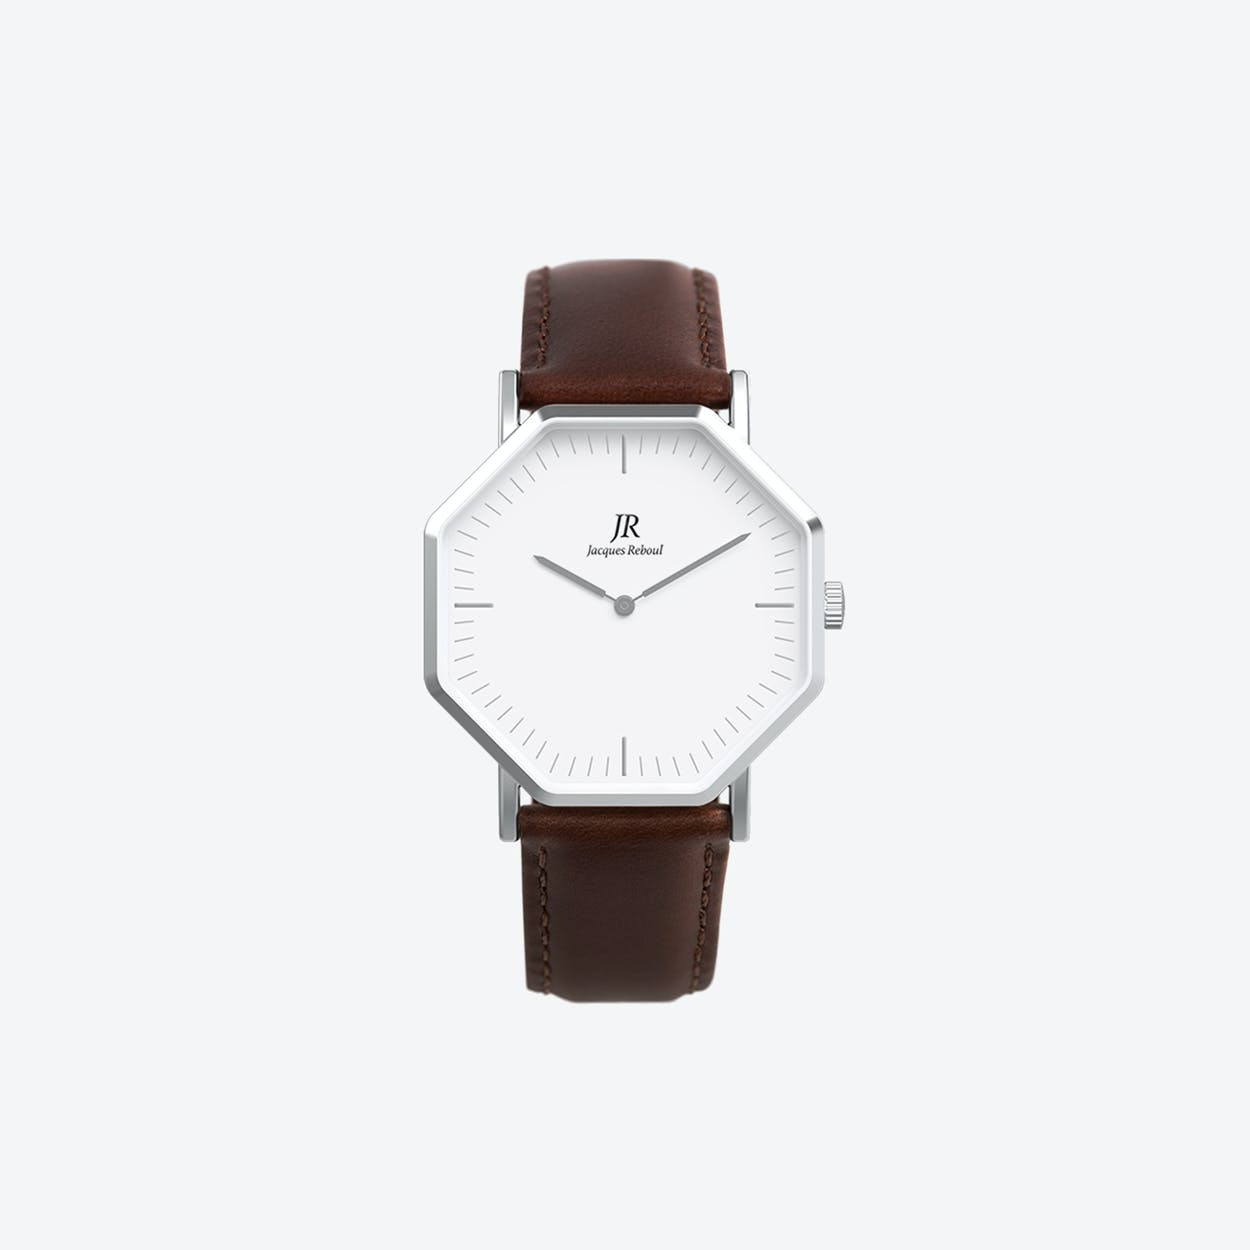 Premier Classic Silver Hexagonal Watch with Dk Brown Leather Strap 41mm